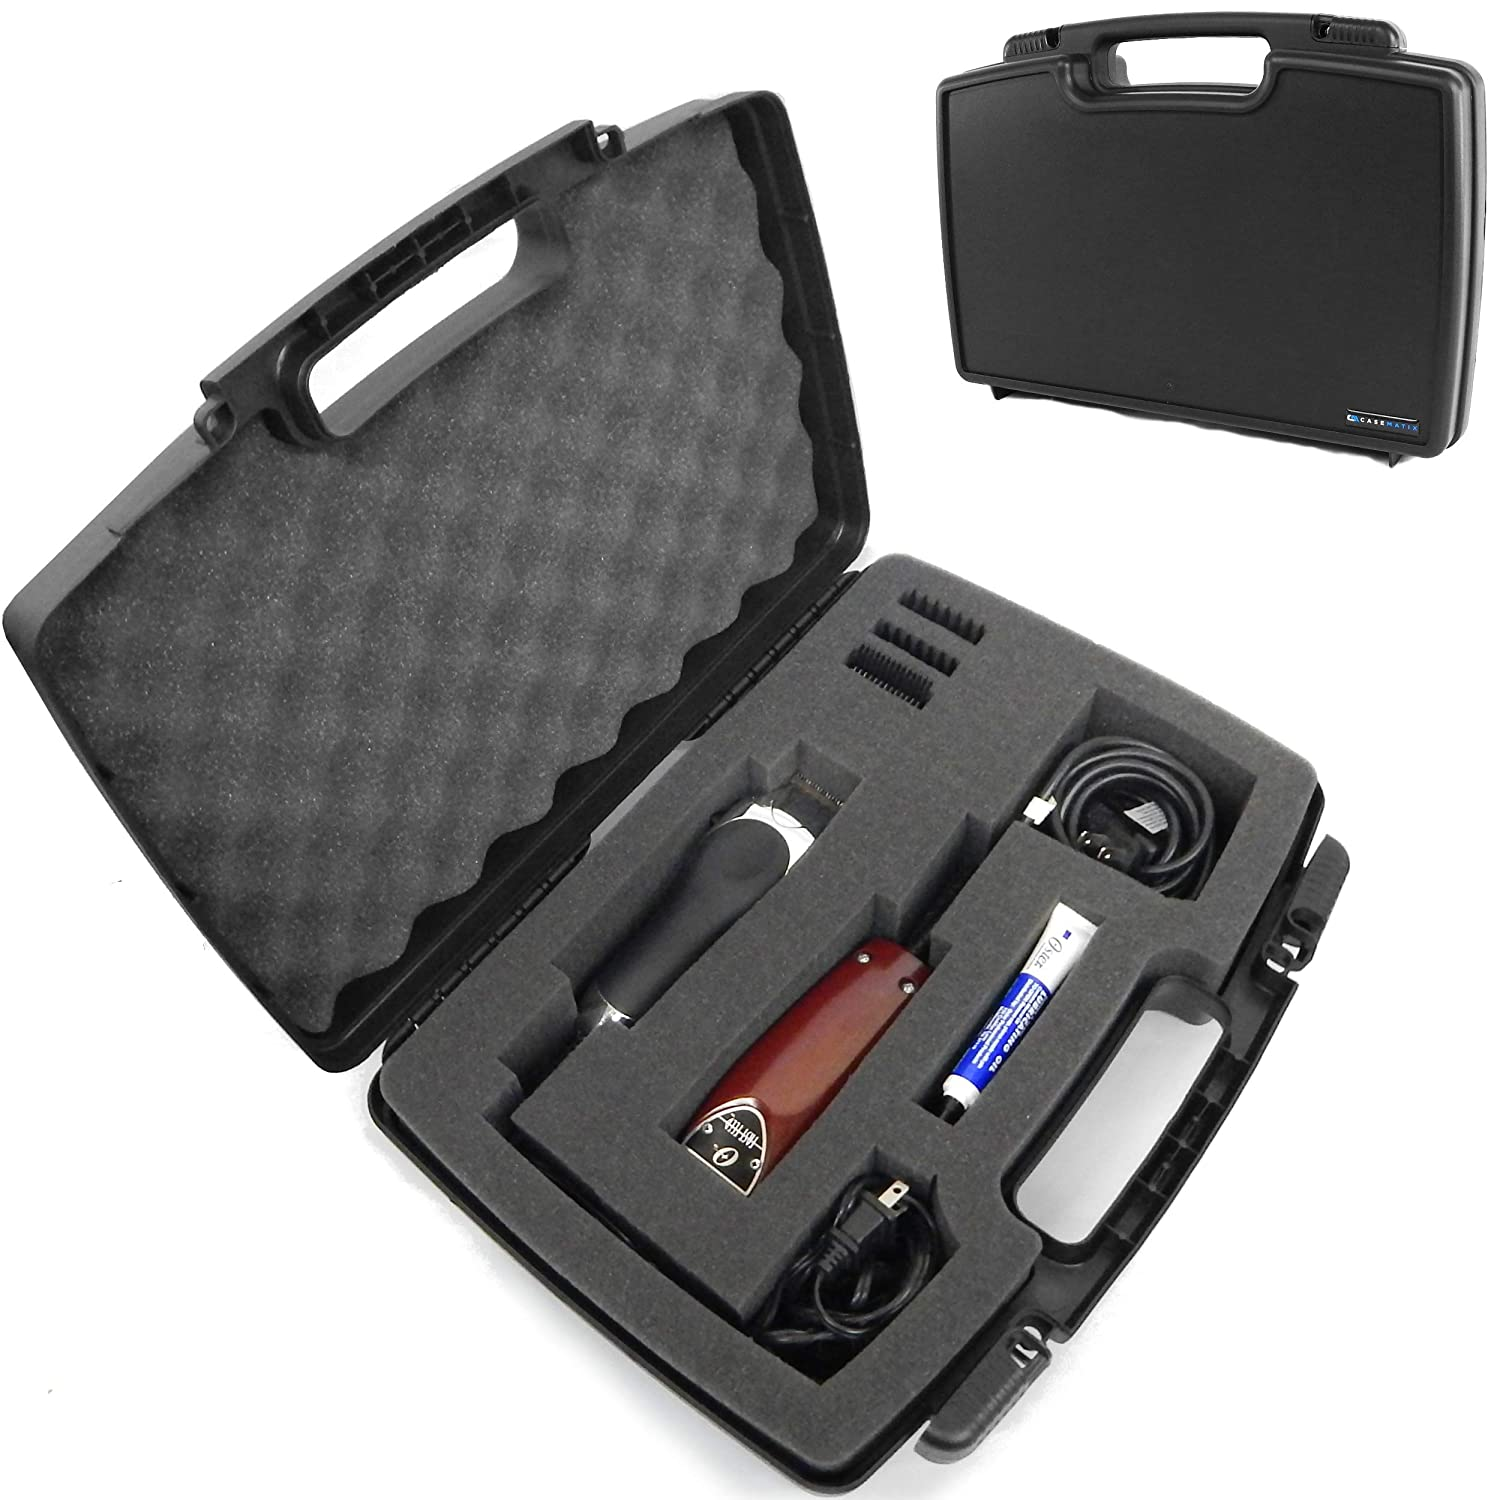 CASEMATIX Hard Shell Barber Case Clippers Travel Organizer and Foam Stylist Barber Bag for Clipper, Buzzer, Trimmer and Supplies - Fits Oster Classic 76, Andis Cordless, Blades, Scissors - Case Only